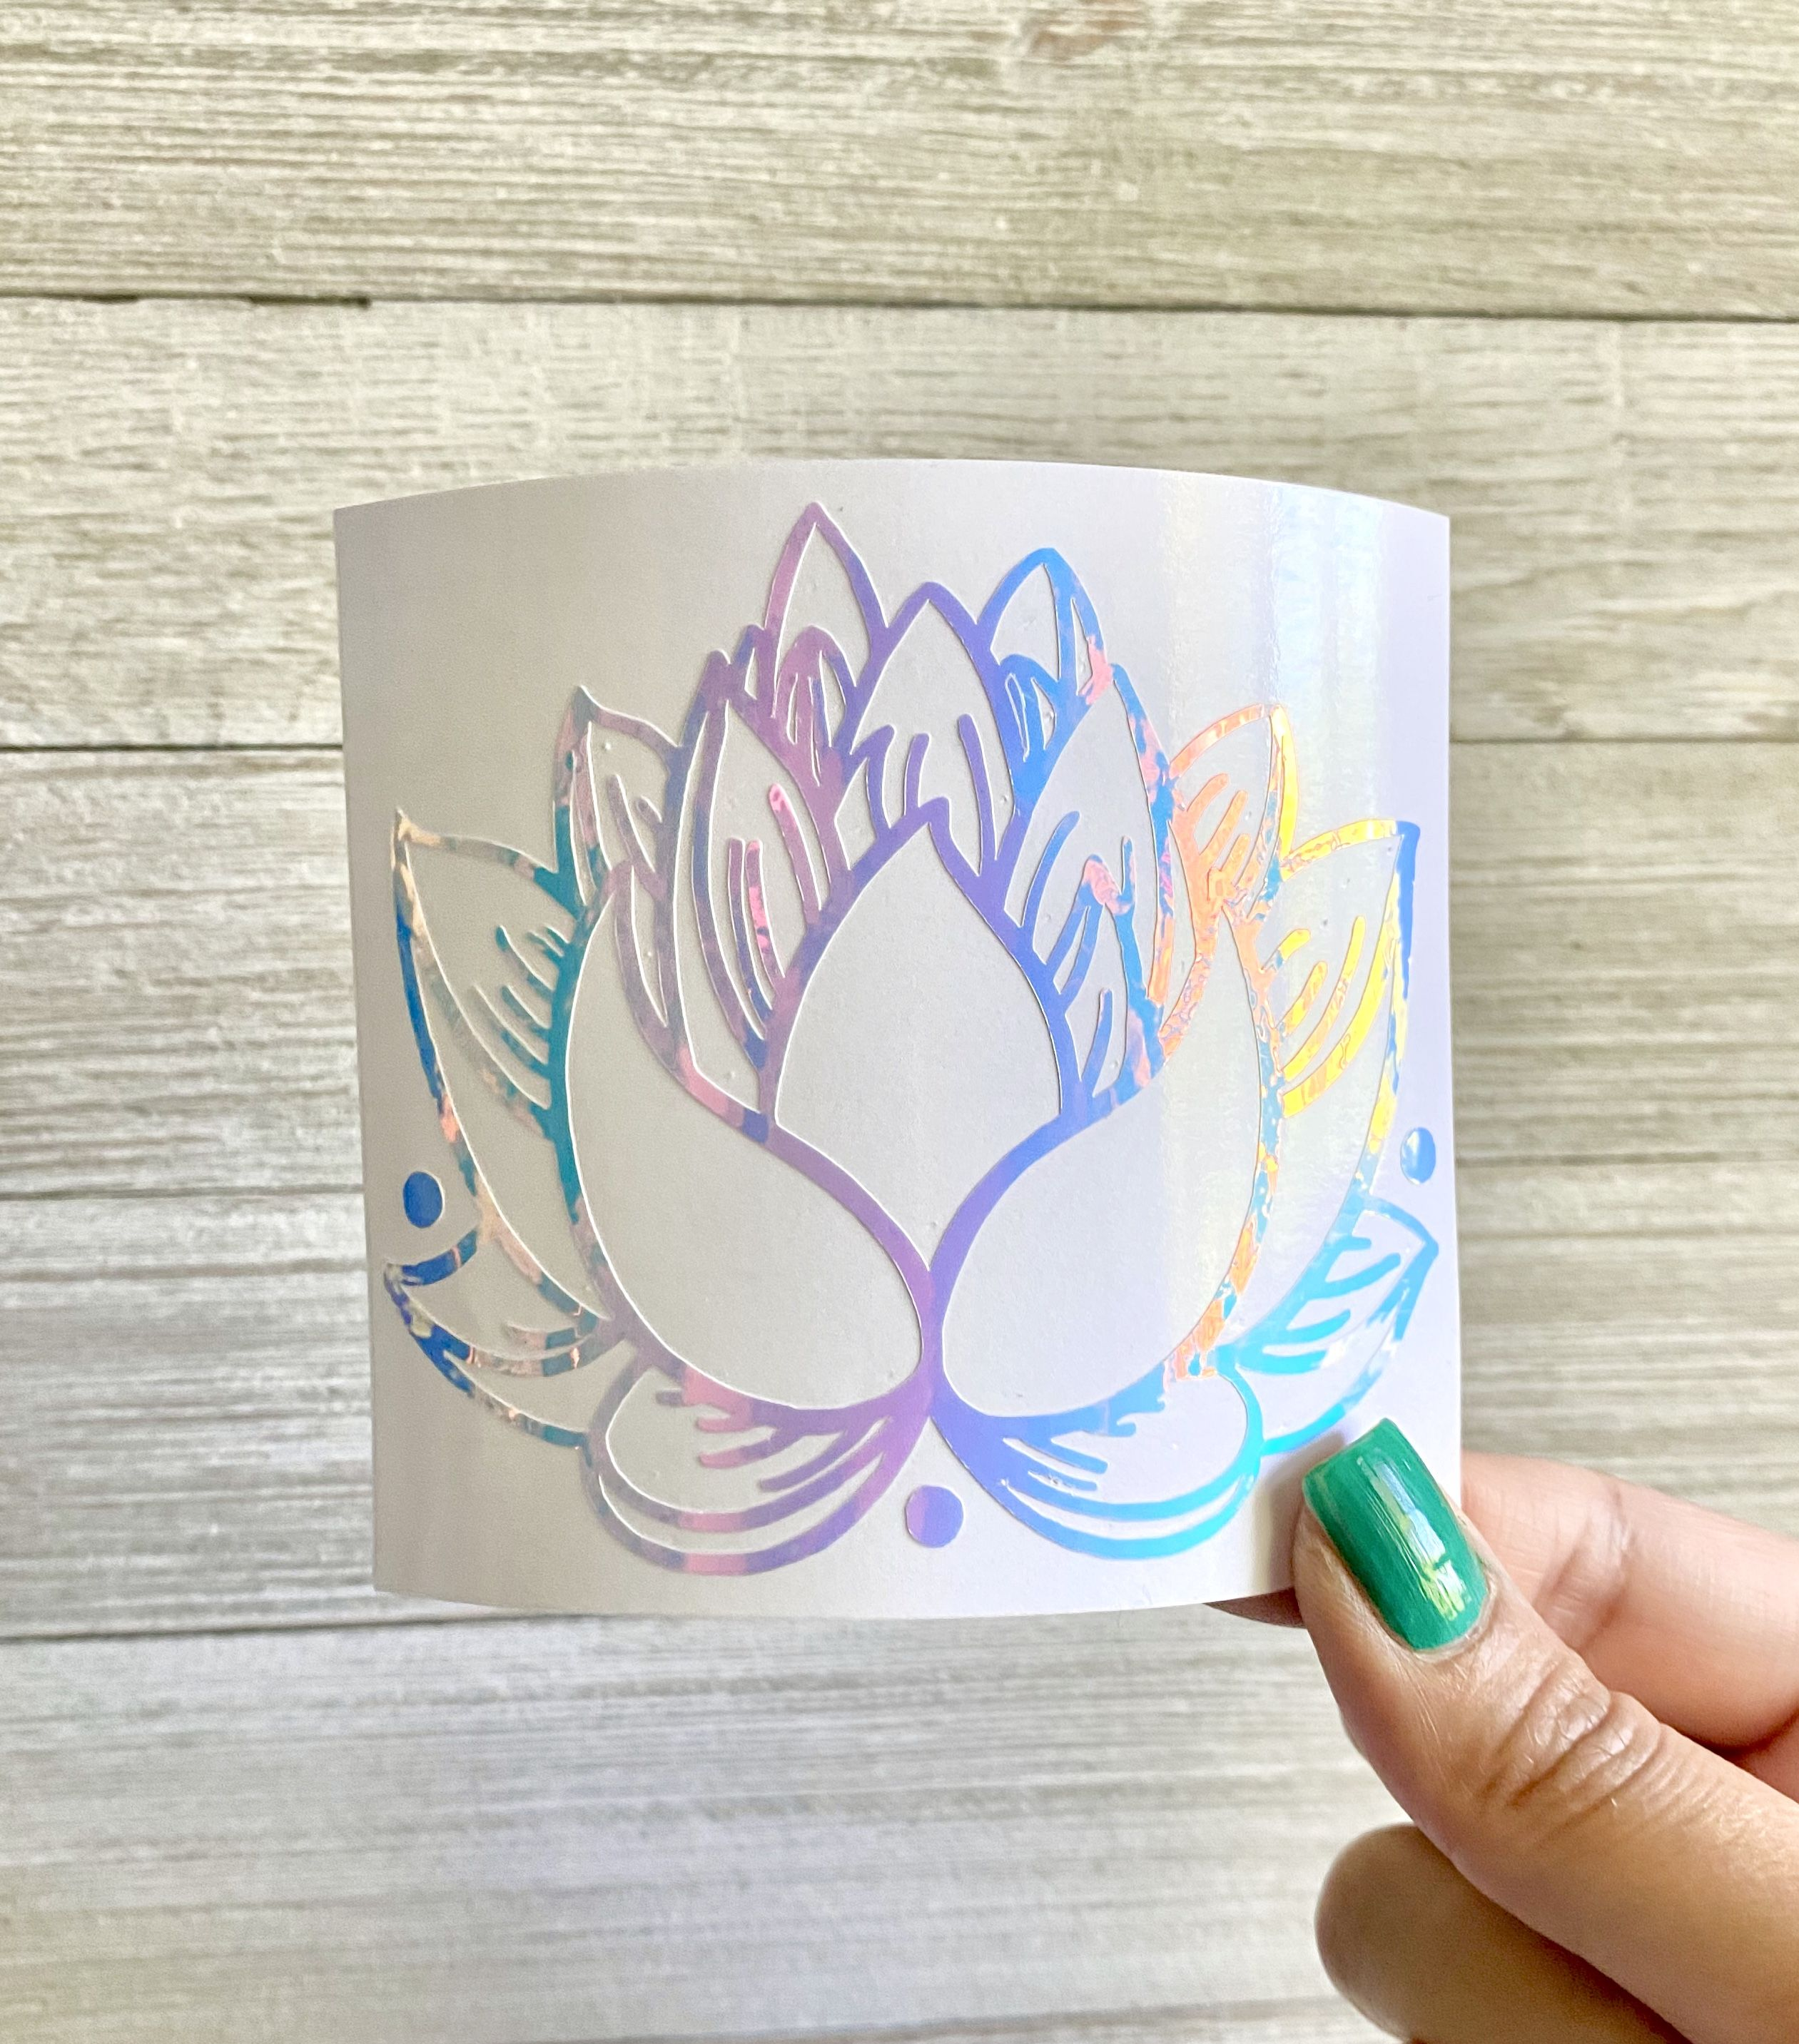 Holographic Lotus Flower Decal Iridescent Vinyl Flower Etsy In 2020 Hand Lettering Cards Cricut Projects Vinyl Holographic